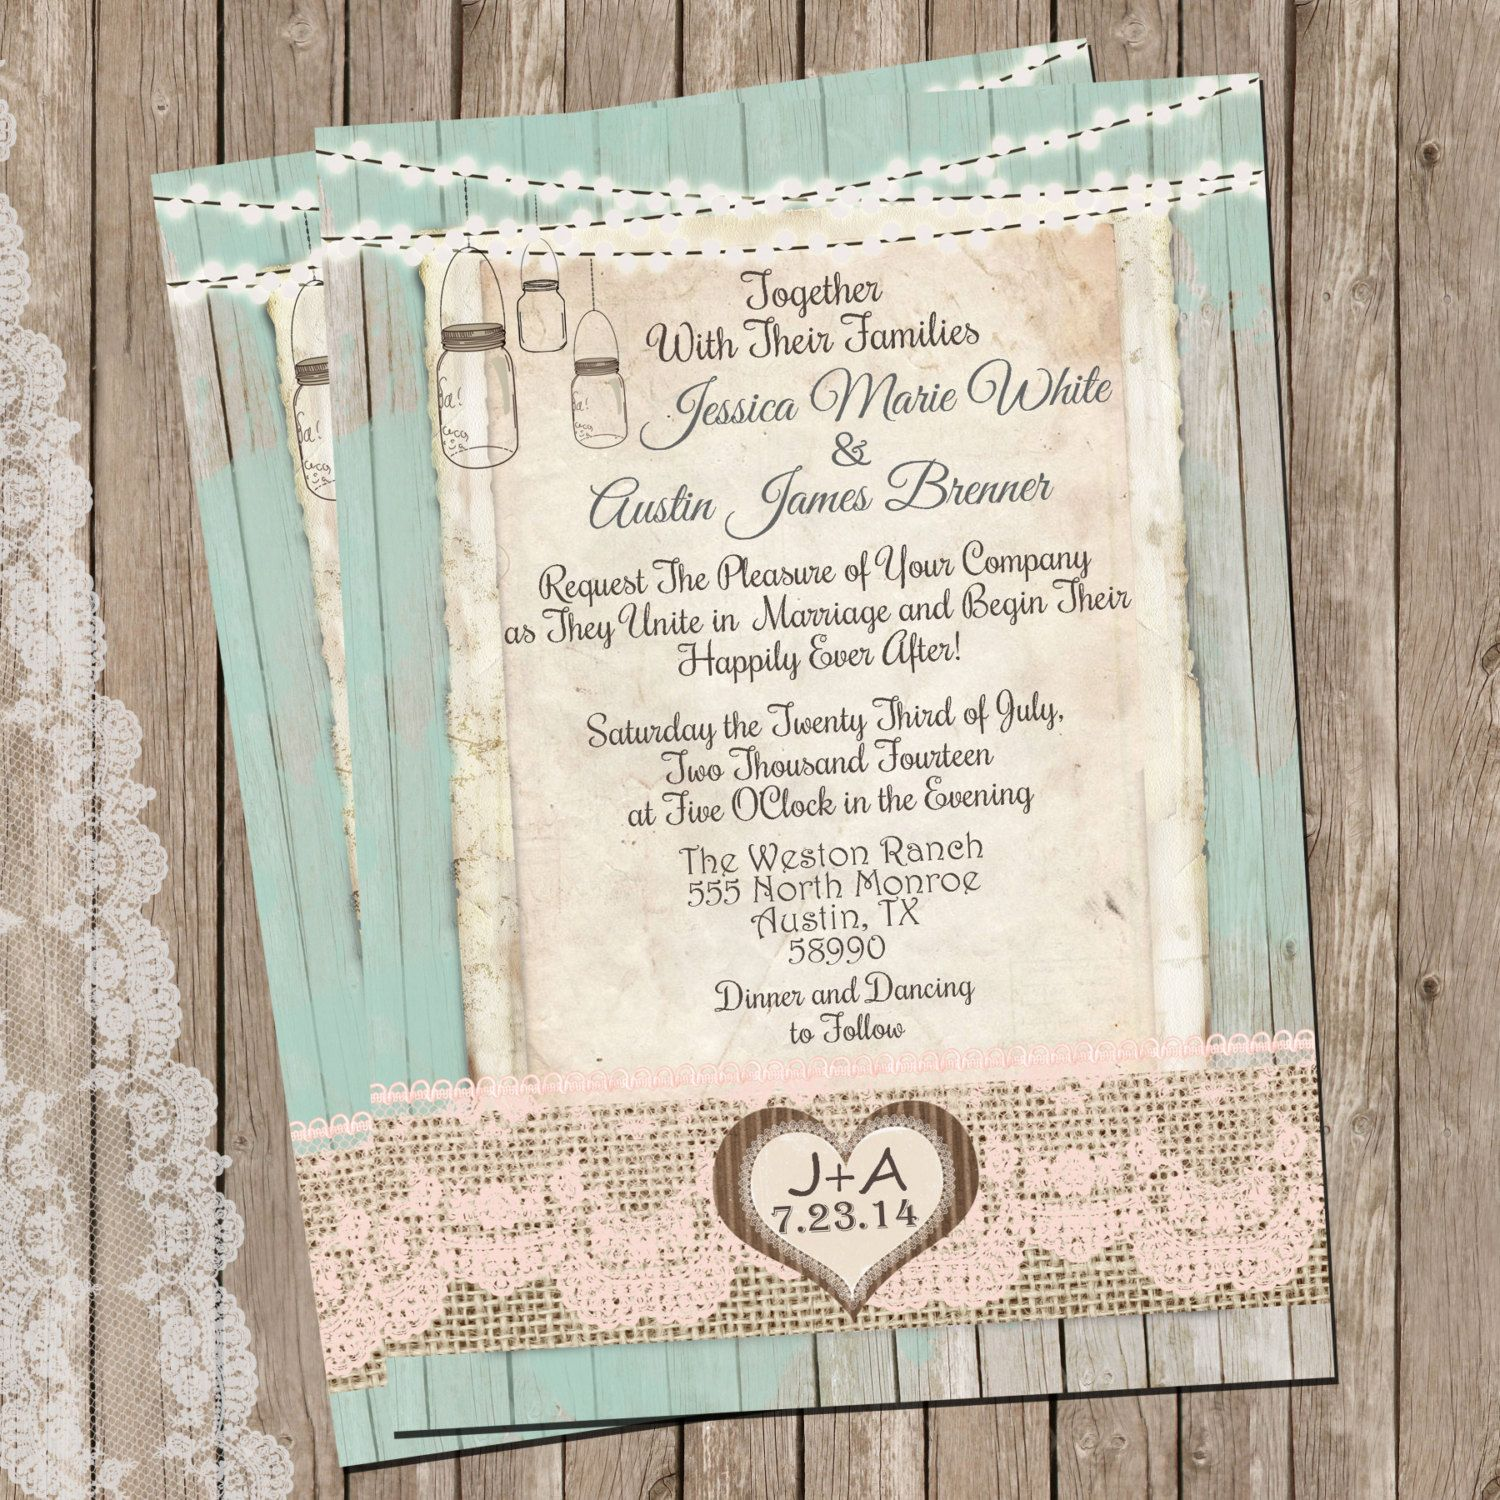 Rustic Wedding Invitation Ideas: Mint And Peach, Burlap And Lace Wedding Invitation, Rustic